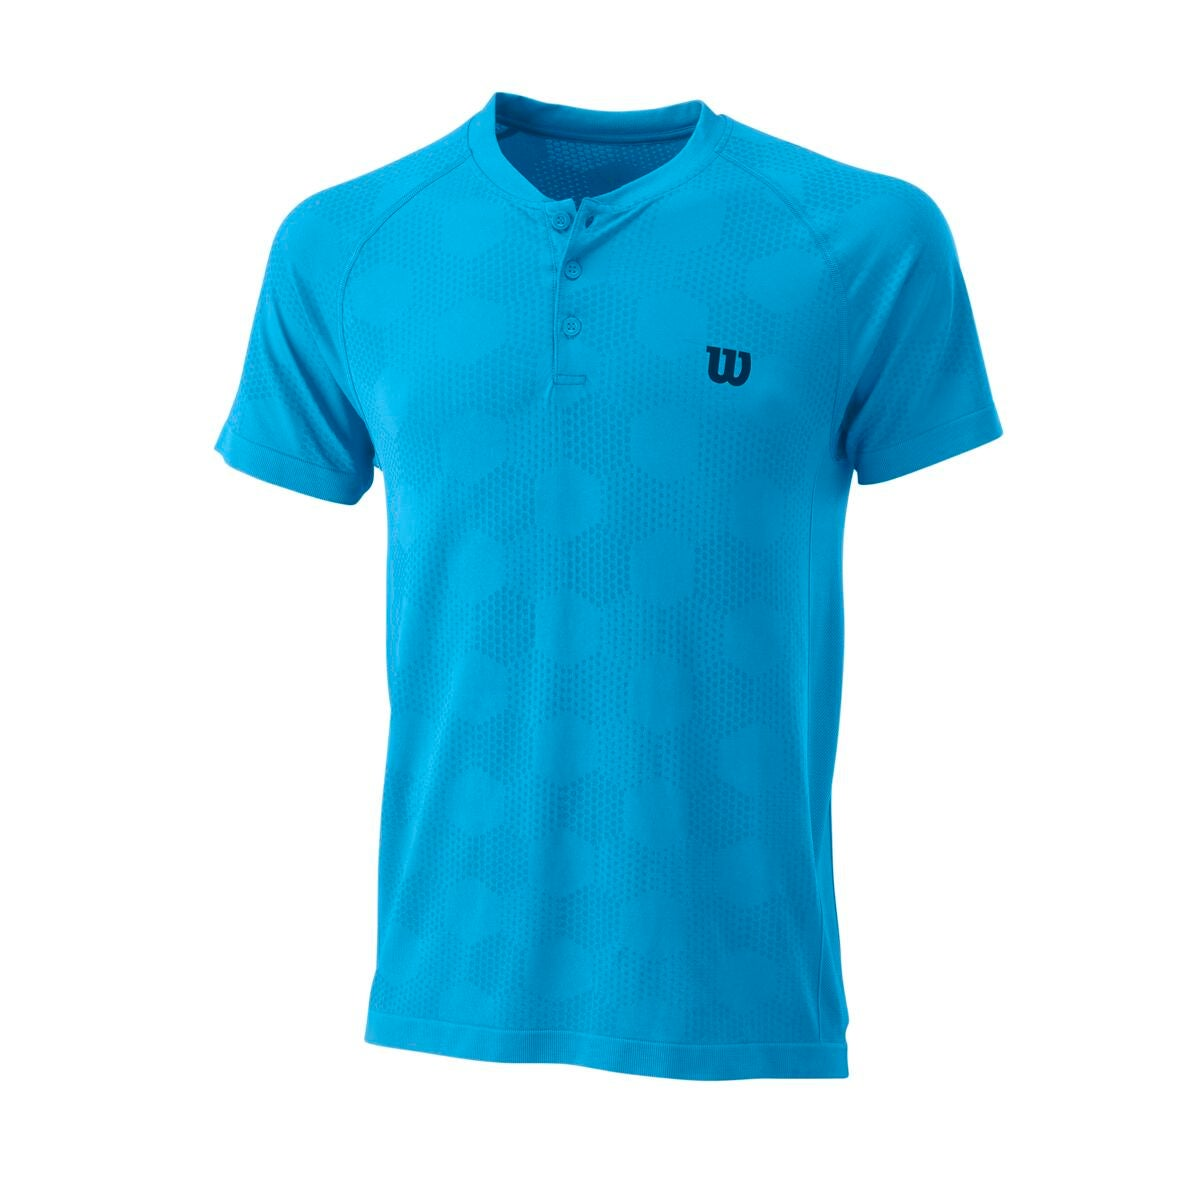 M Competition Seamless Crew Homme Wilson Racket Sport M Competition Seamless Crew